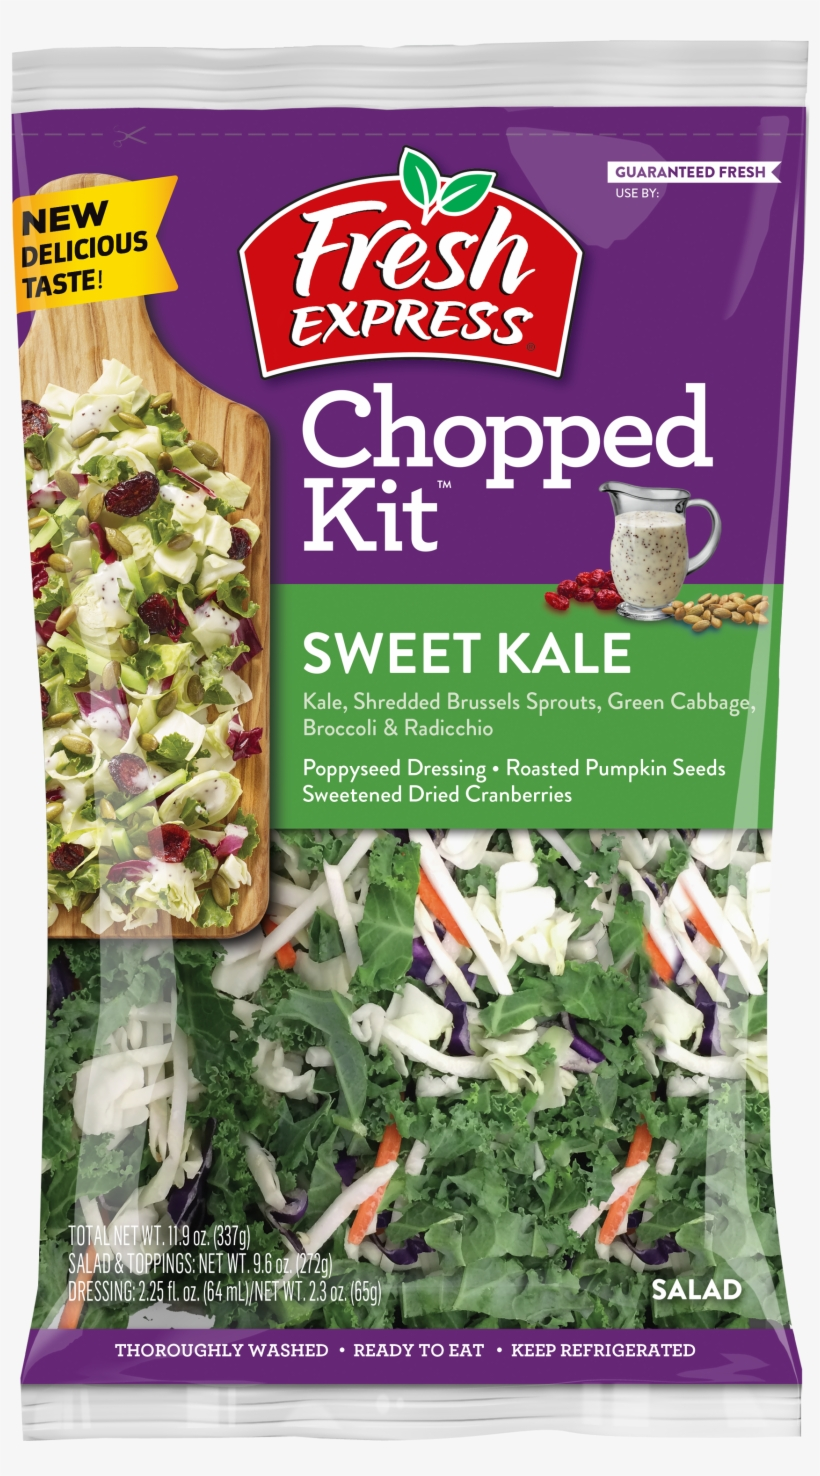 Sweet Kale Chopped Salad Kit - Fresh Express Spring Mix - 5 Oz Bag, transparent png #1134226